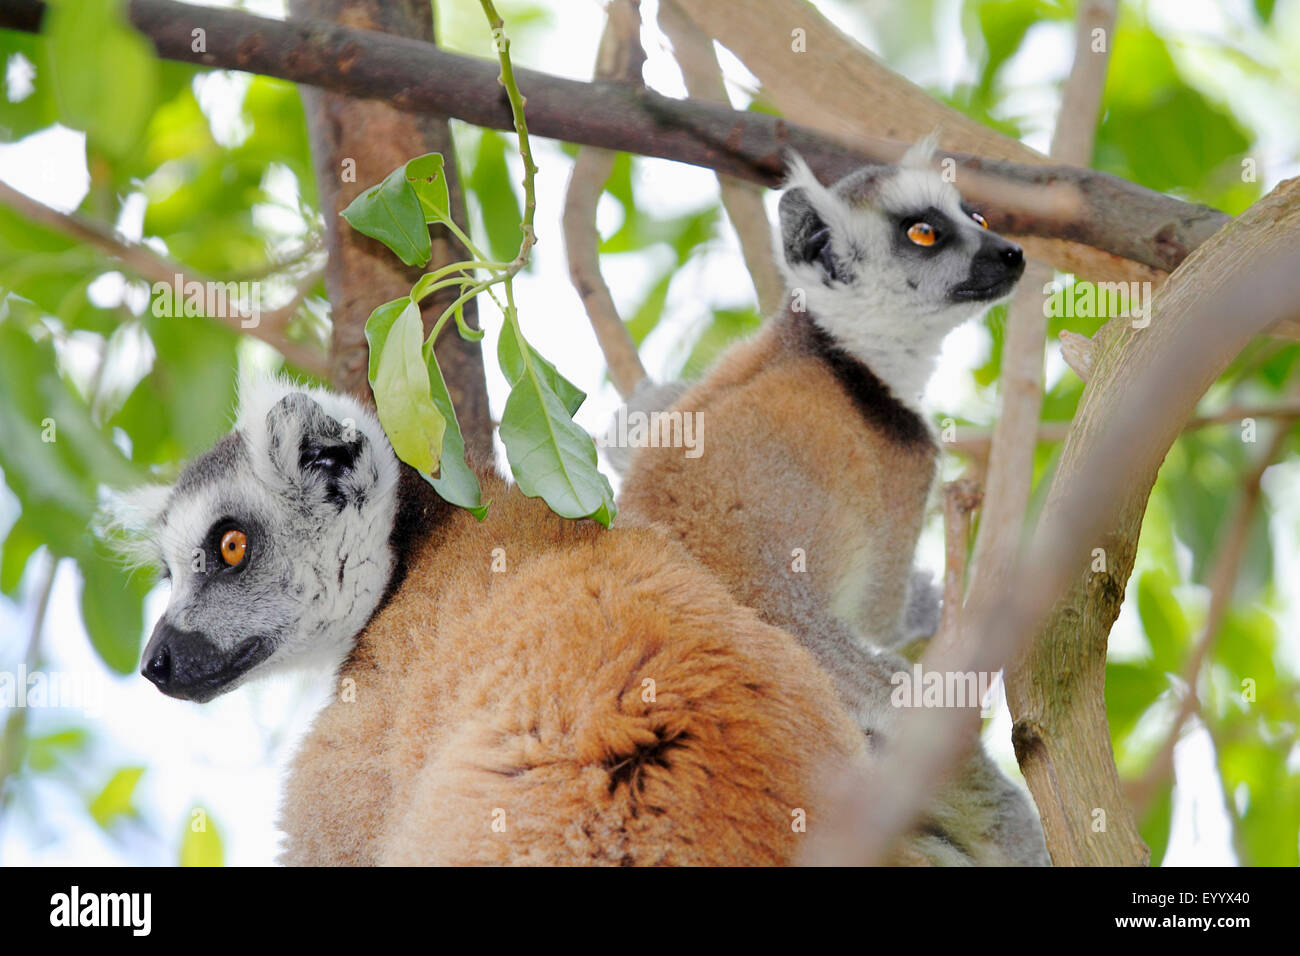 ring-tailed lemur (Lemur catta), two animals are sitting on a branch and looking in different directions, Madagascar, - Stock Image